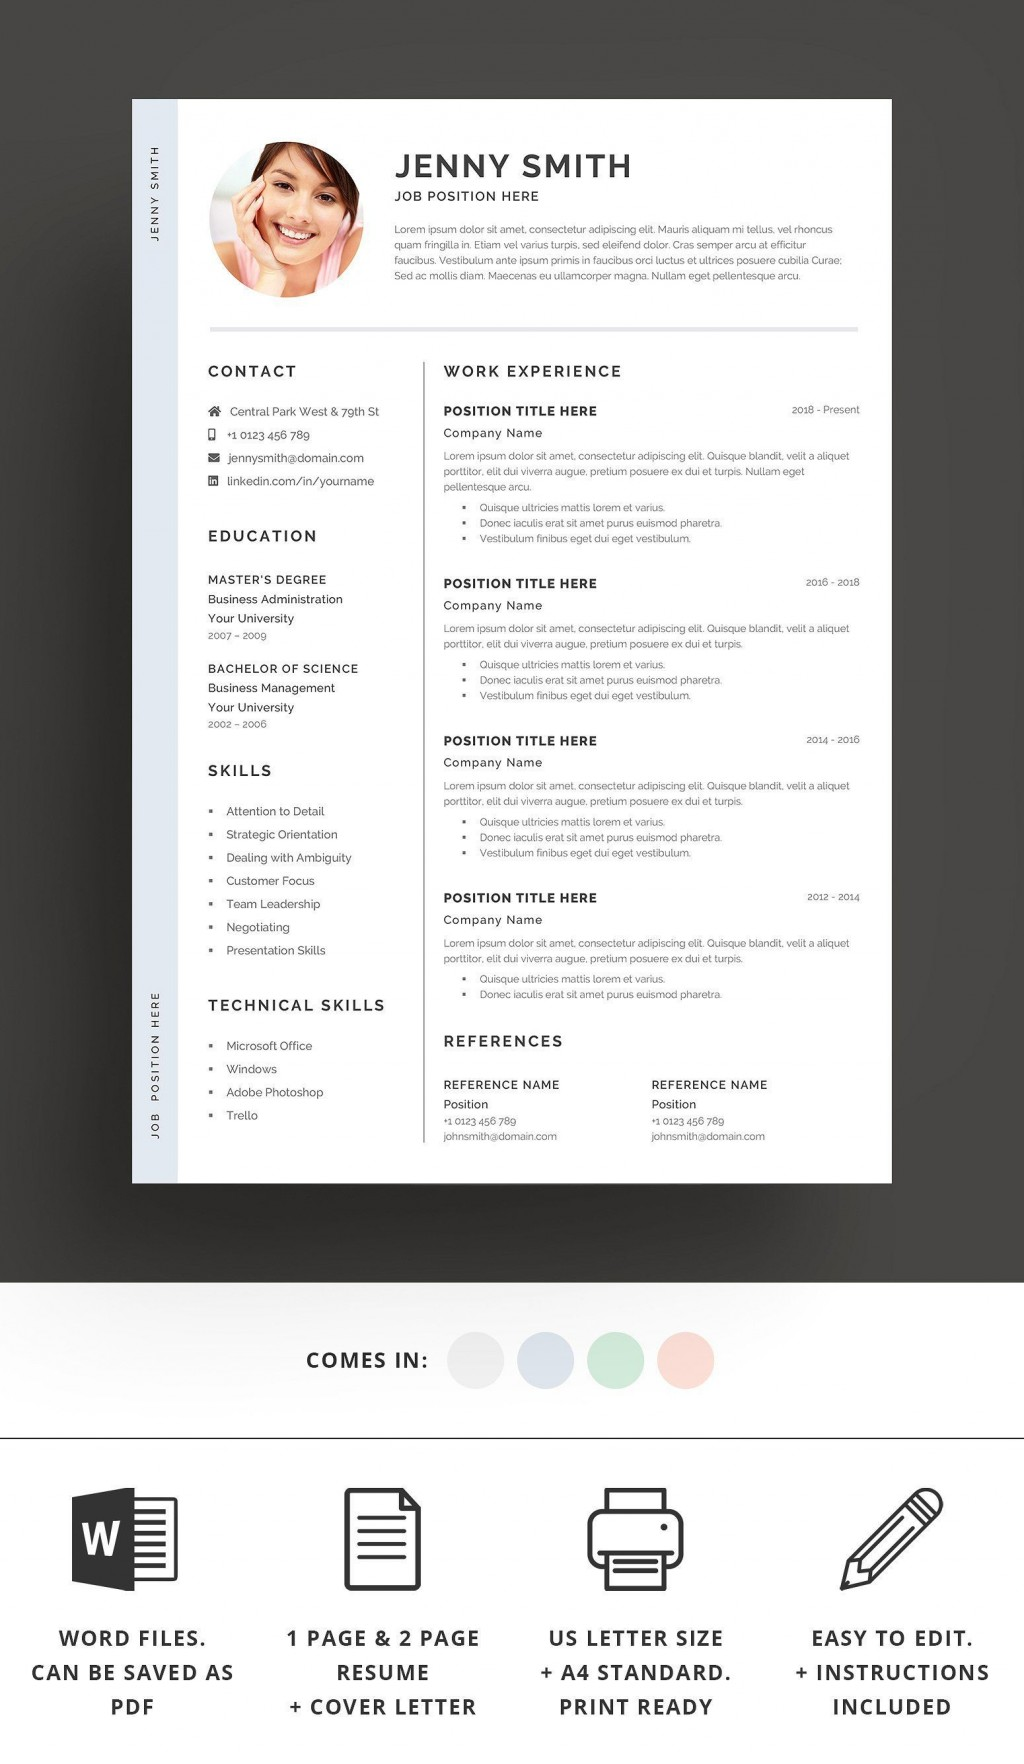 001 Impressive Resume Template On Word Picture  2007 Download 2016 How To Get 2010Large